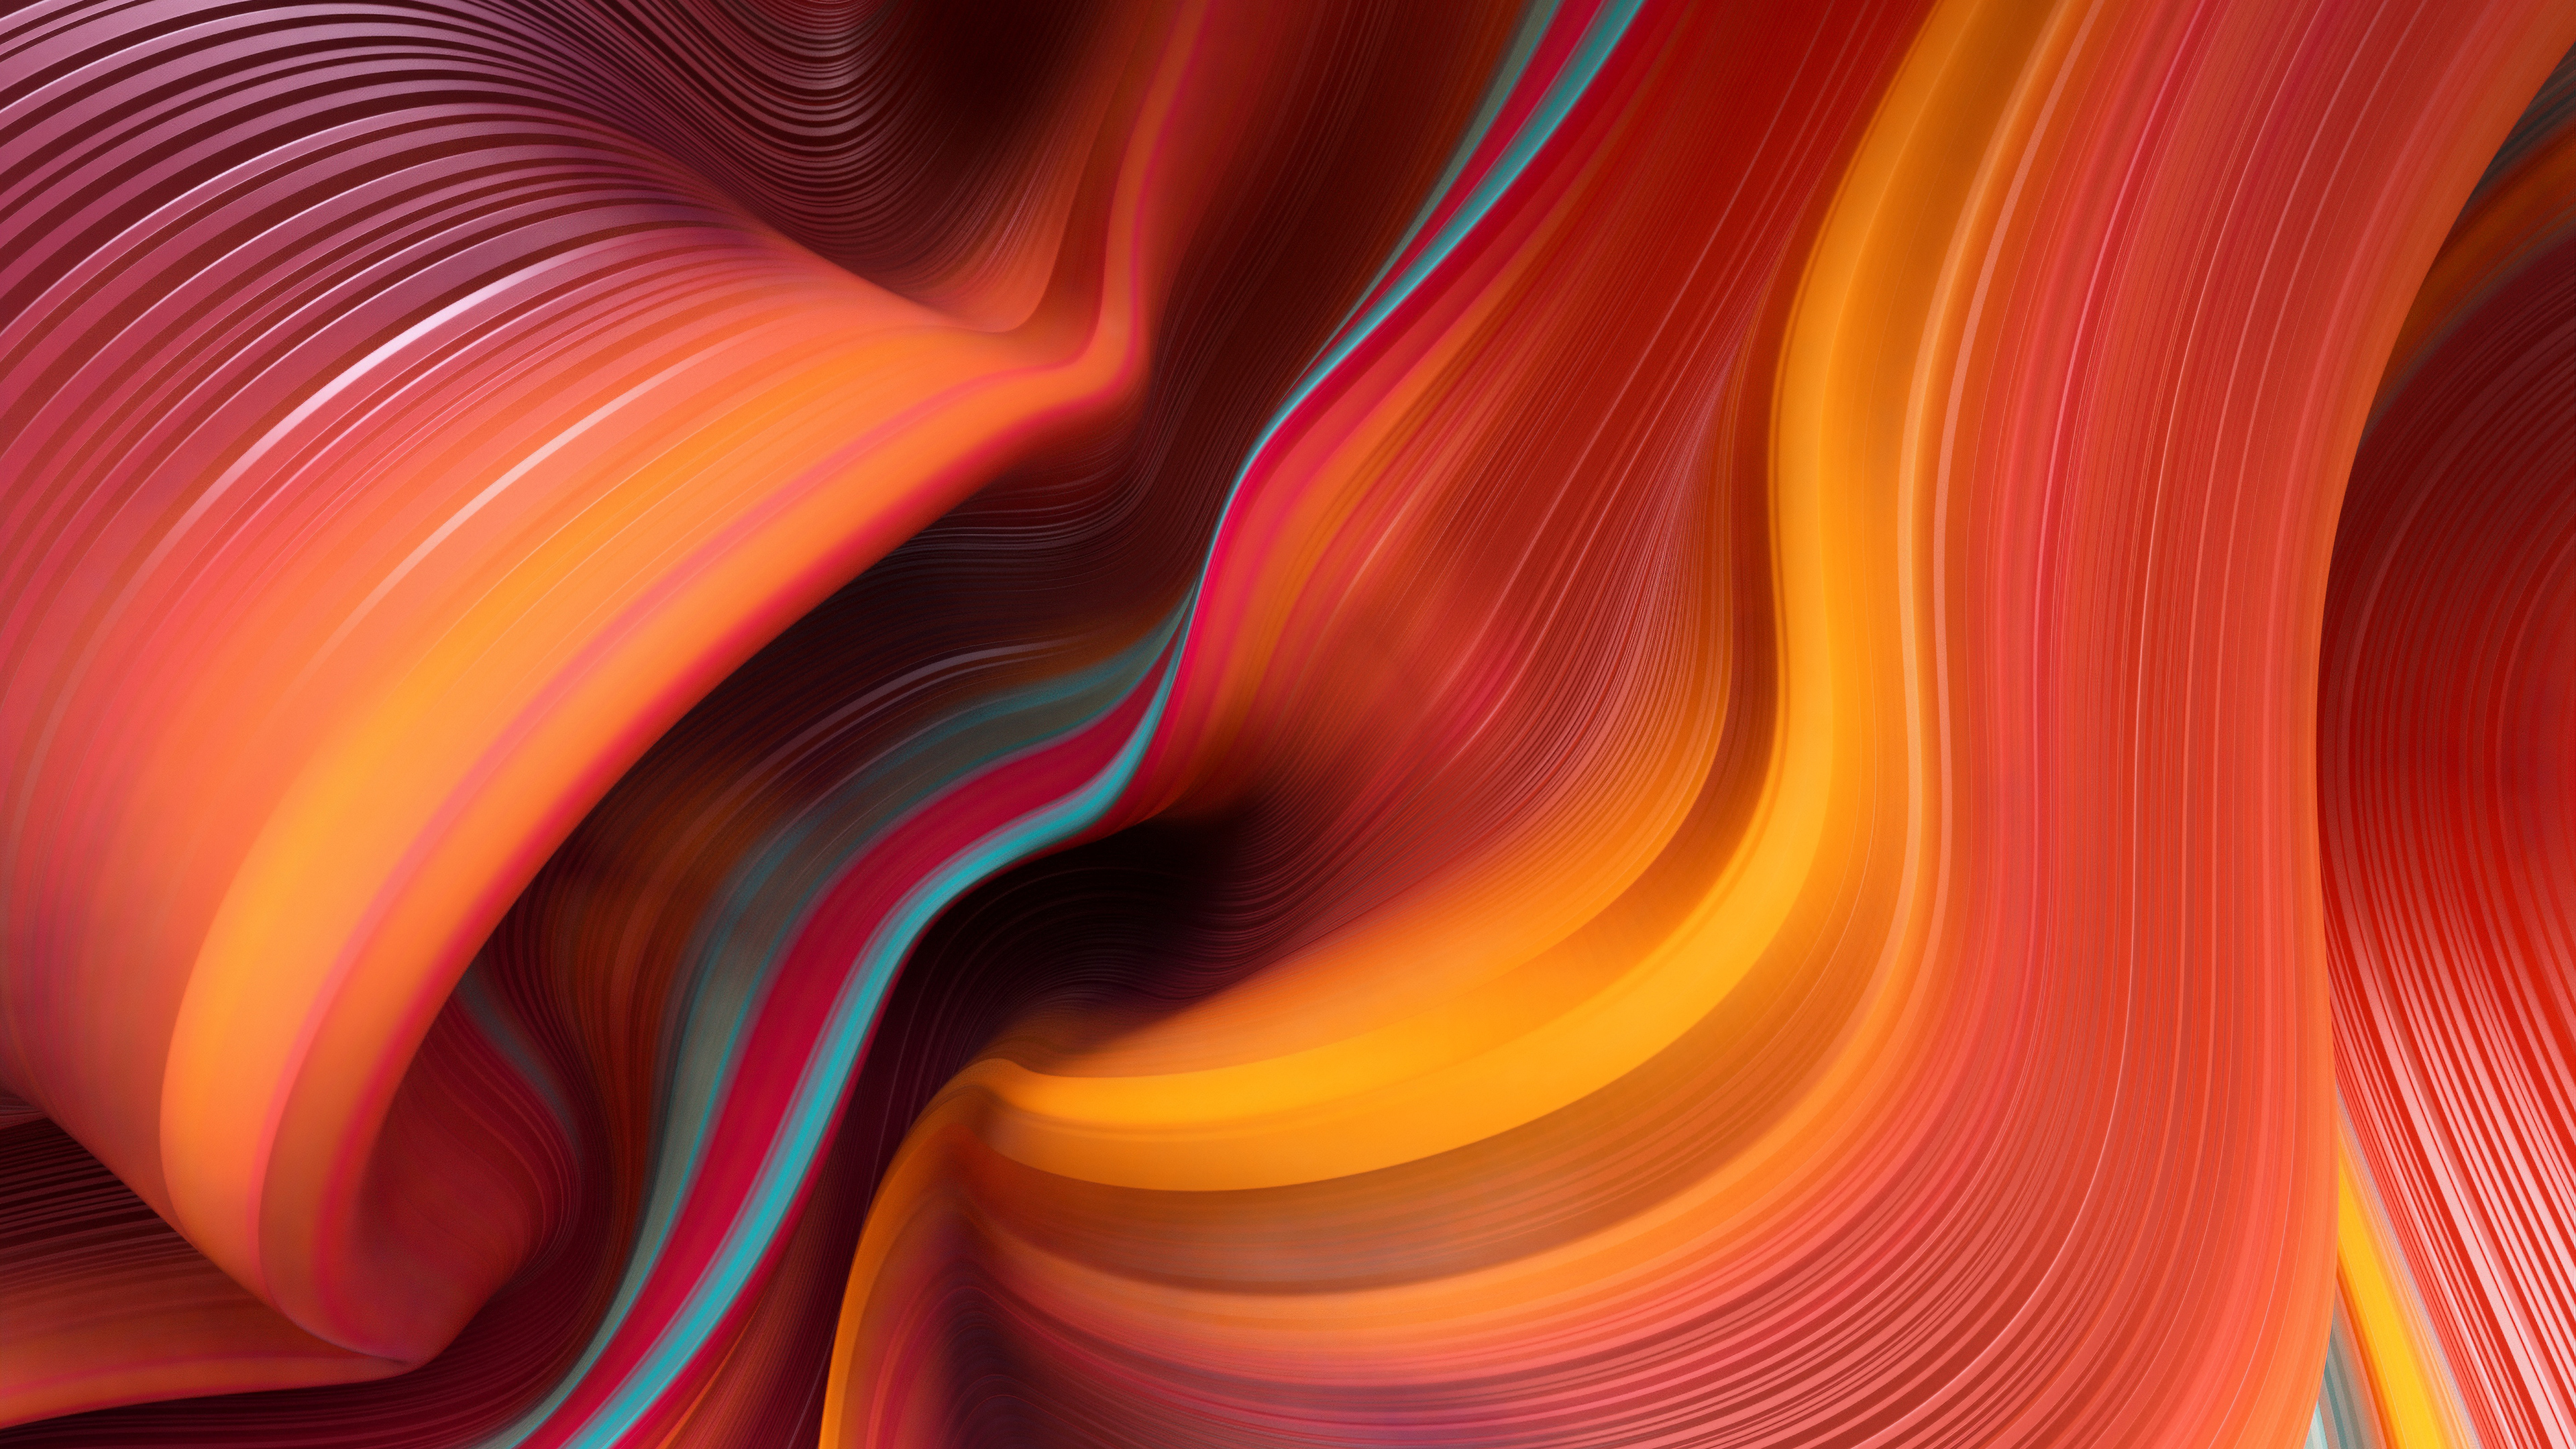 General 3840x2160 digital digital art artwork illustration abstract 3D Abstract lines curved Photoshop Adobe Illustrator colorful pattern texture 3D yellow cyan red orange gradient